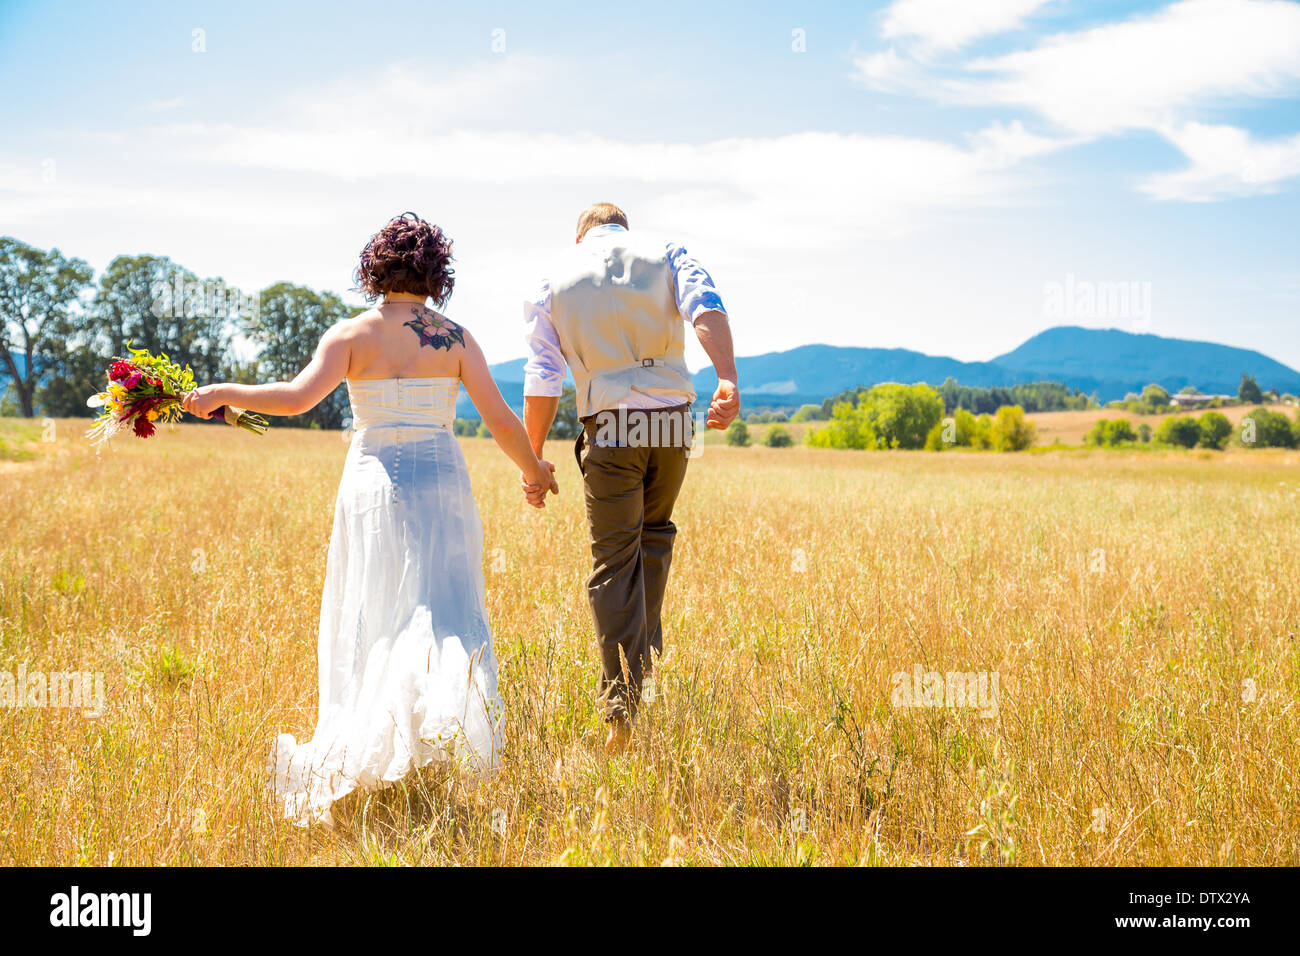 Bride and groom walking together on their wedding day through a field in Oregon. Stock Photo